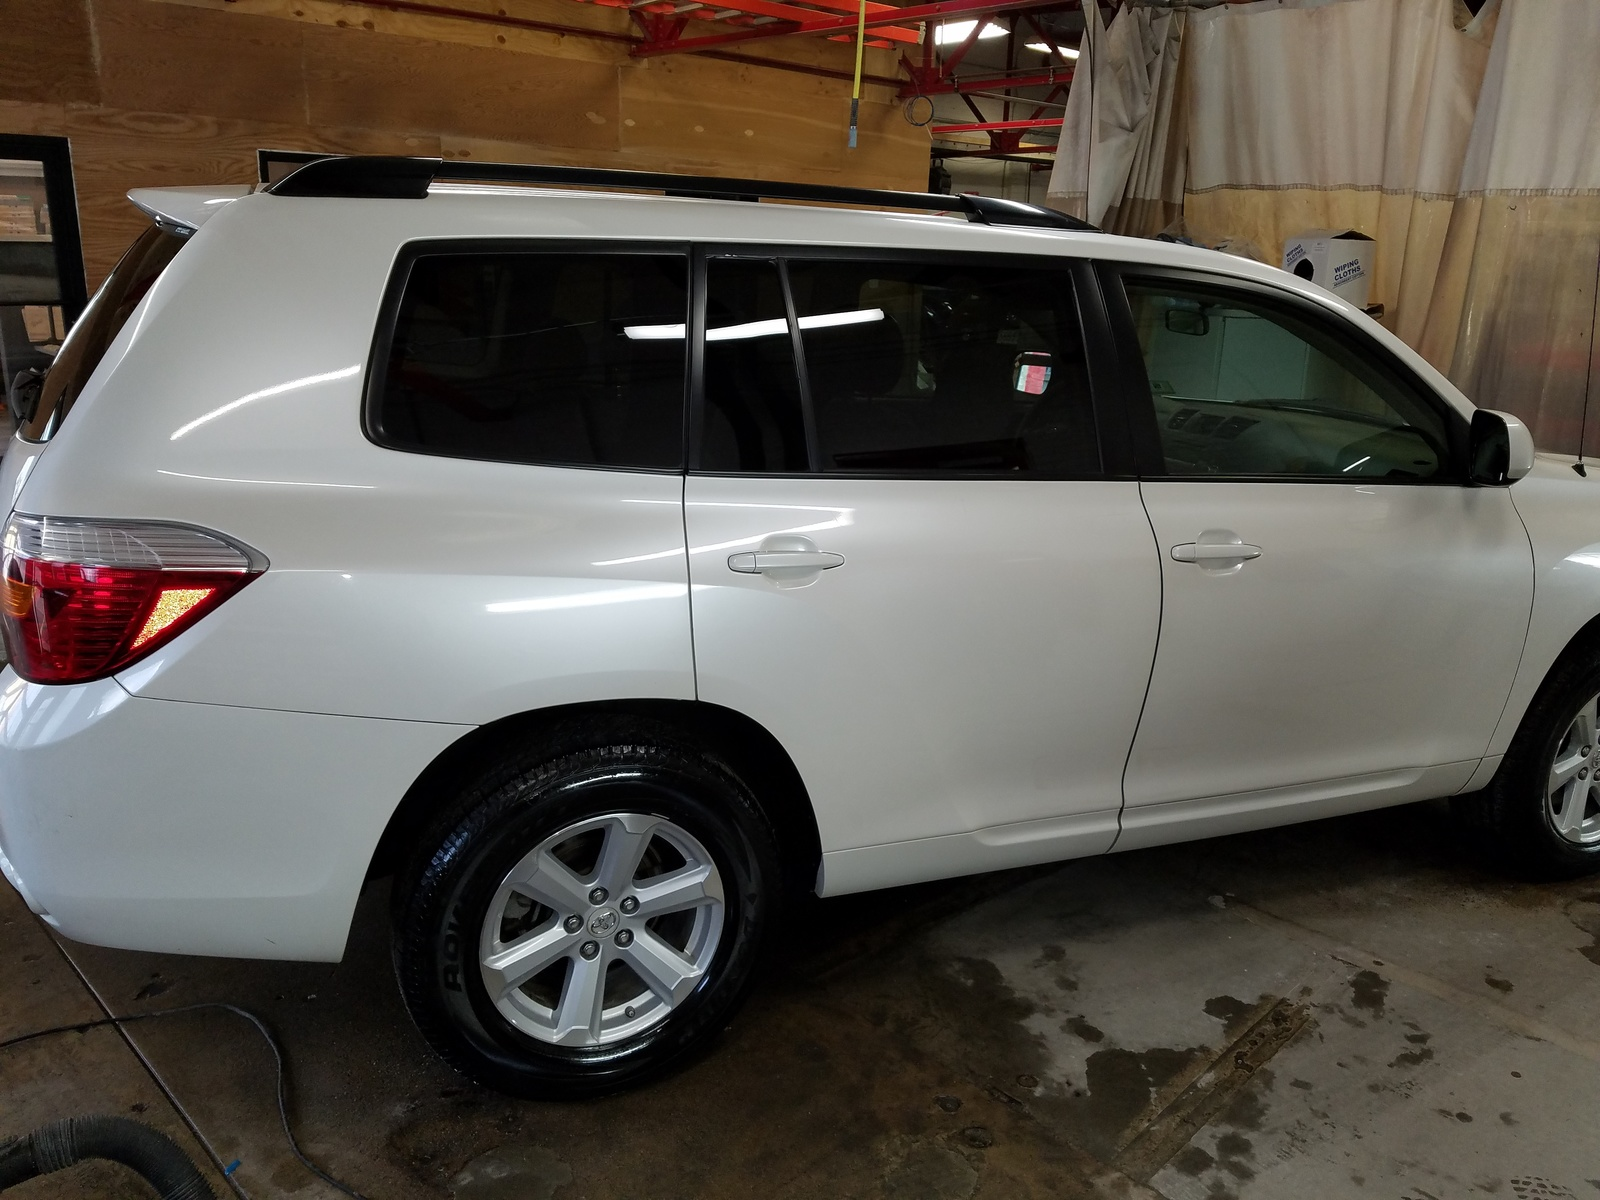 Toyota Highlander Owners Manual: If the electronic key doesnot operate properly